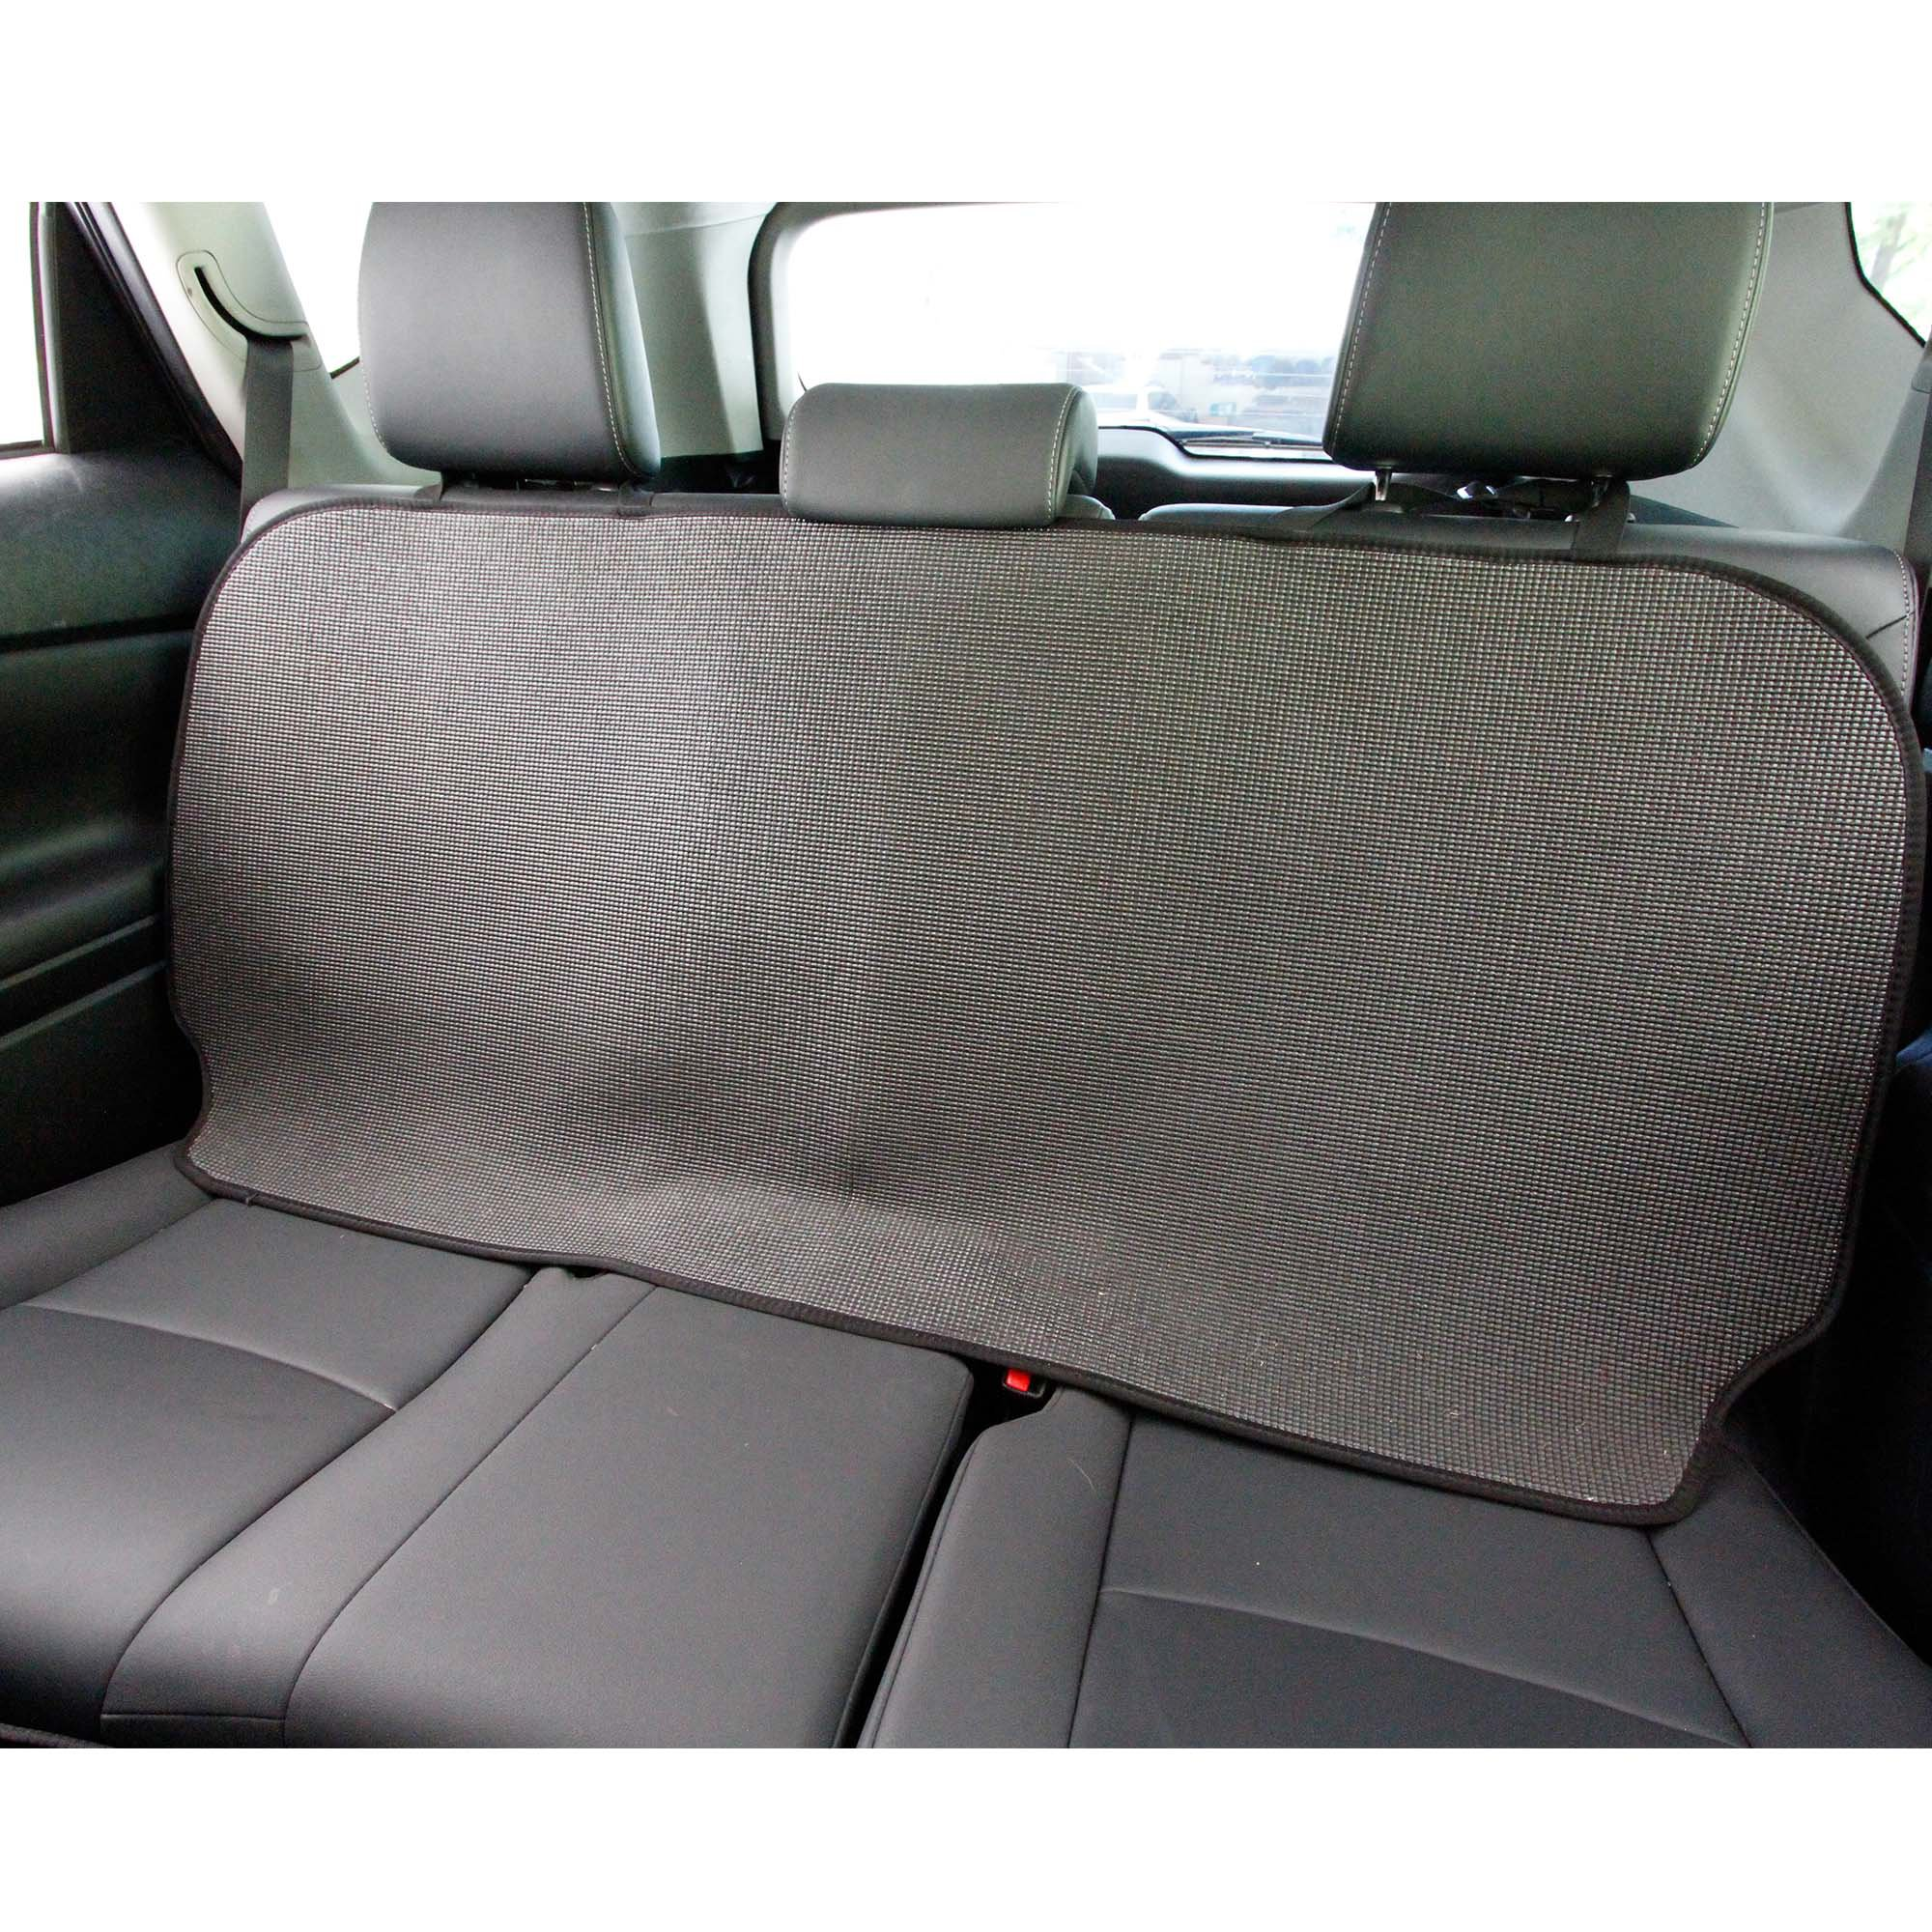 Stayjax Pet Products Bench Seat Top Car Seat Cover Petco